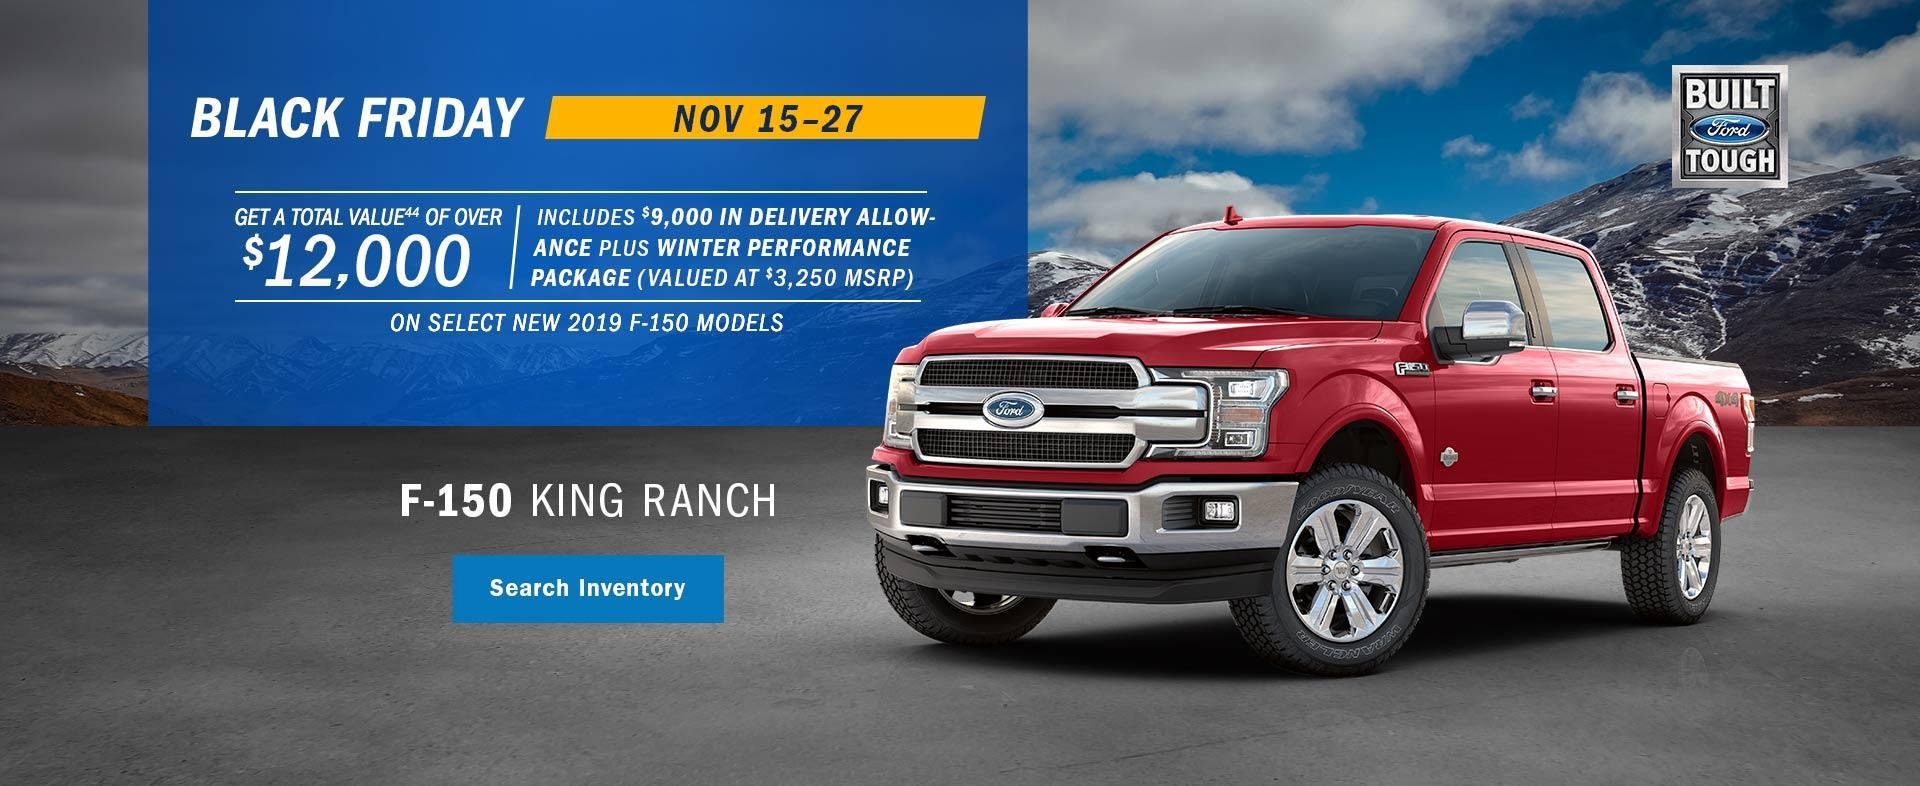 Ford F-150 Black Friday